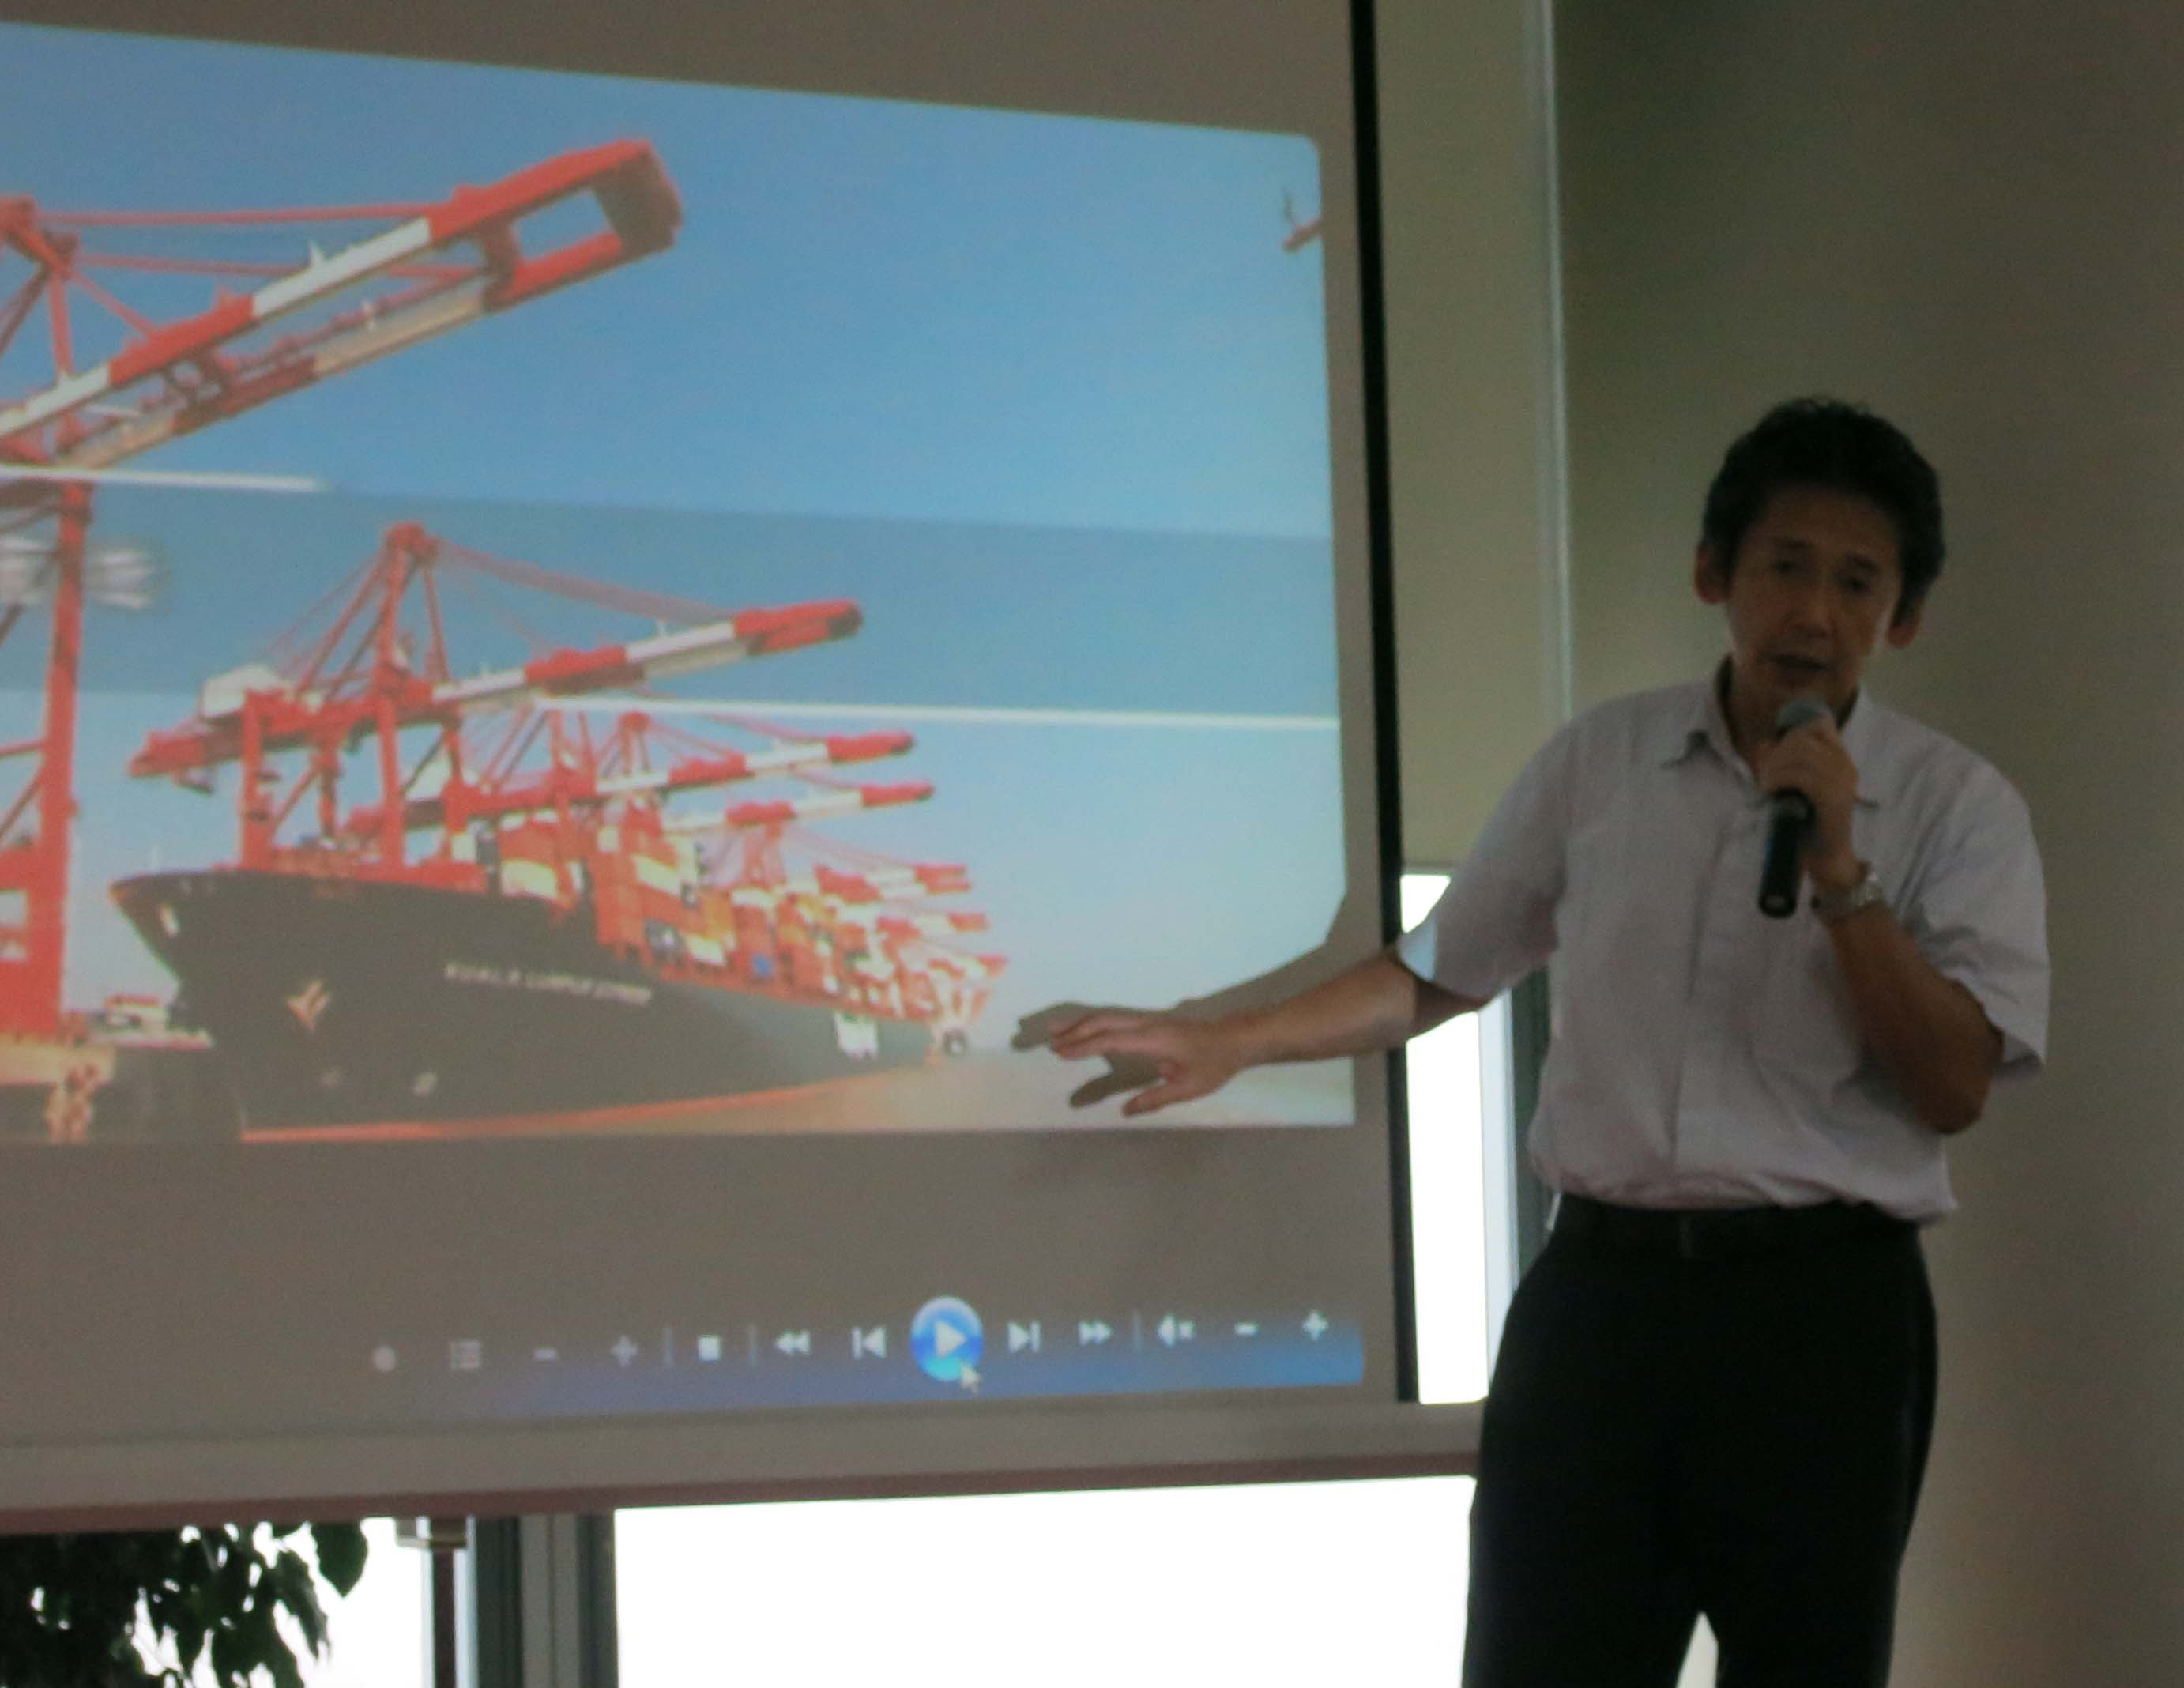 KAMBARA KISEN Holds Business Orientation and Networking Conference with 40 Students from the UNIVERSITY OF NAGASAKI at Chinese Subsidiary Company KAMBARA KISEN (CHINA) SHIPPING Co., Ltd.